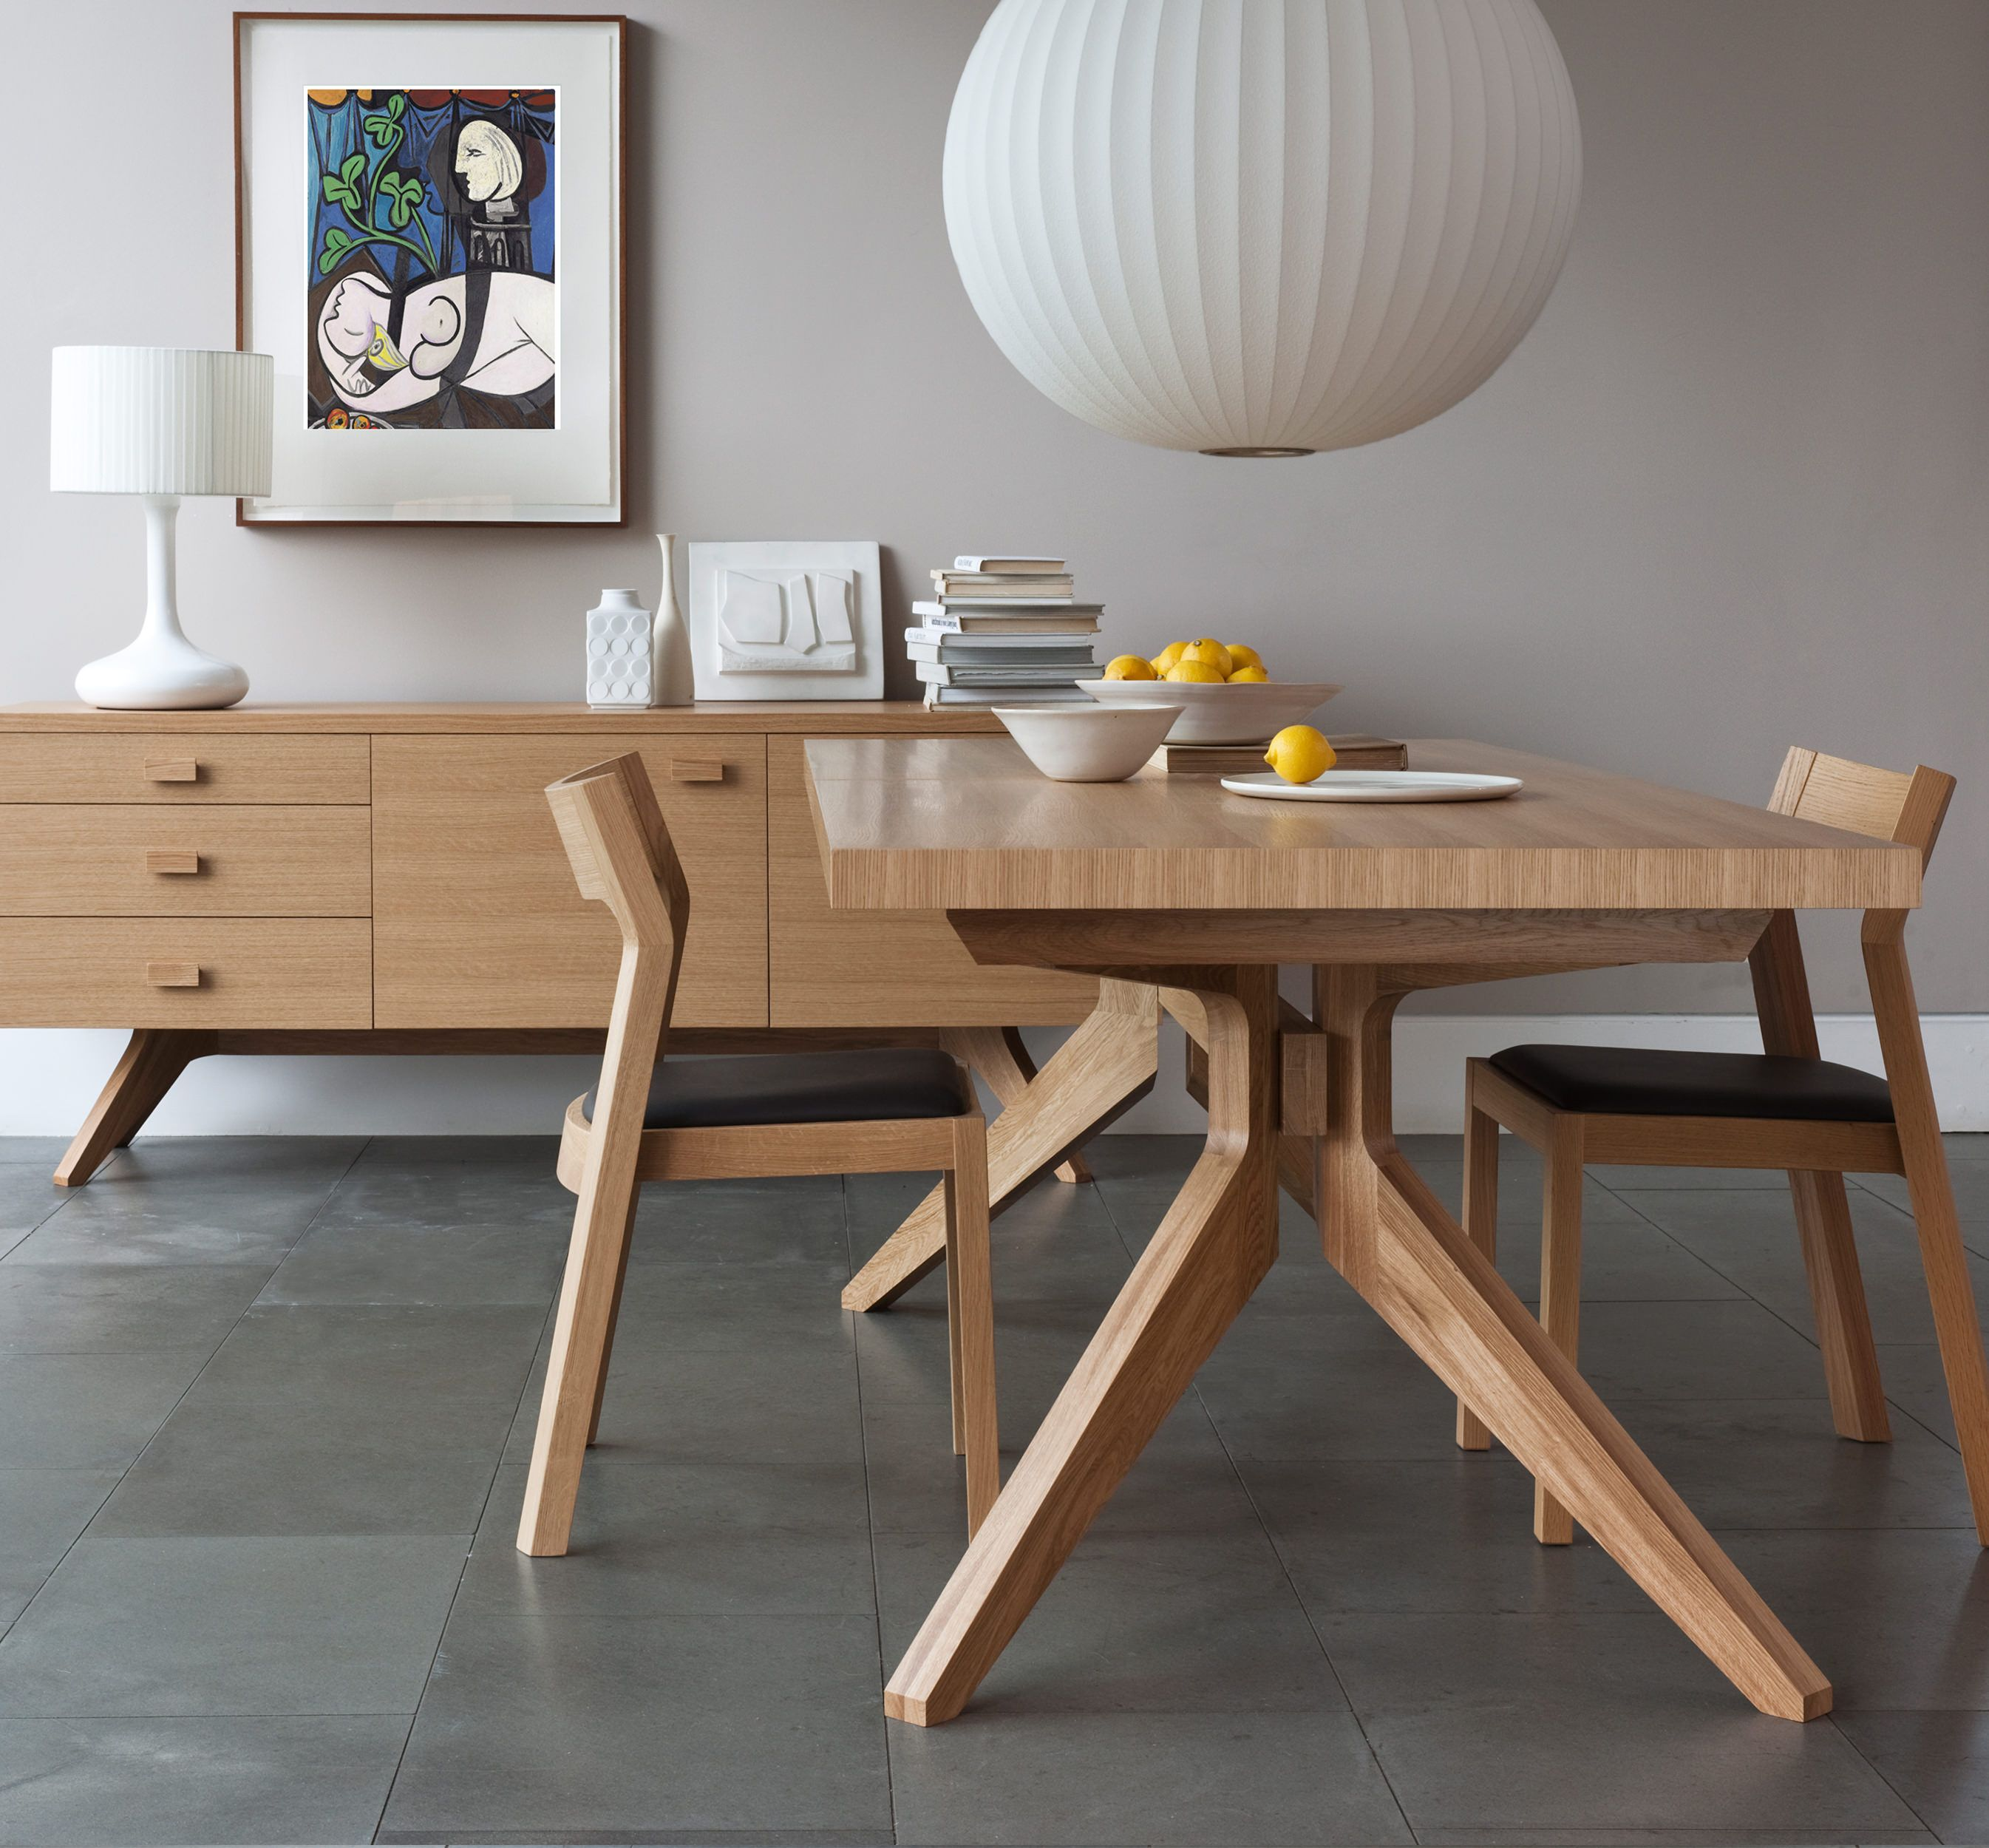 Buy TL071 Matthew Hilton Cross Dining TableWood Furniture on bdtdc